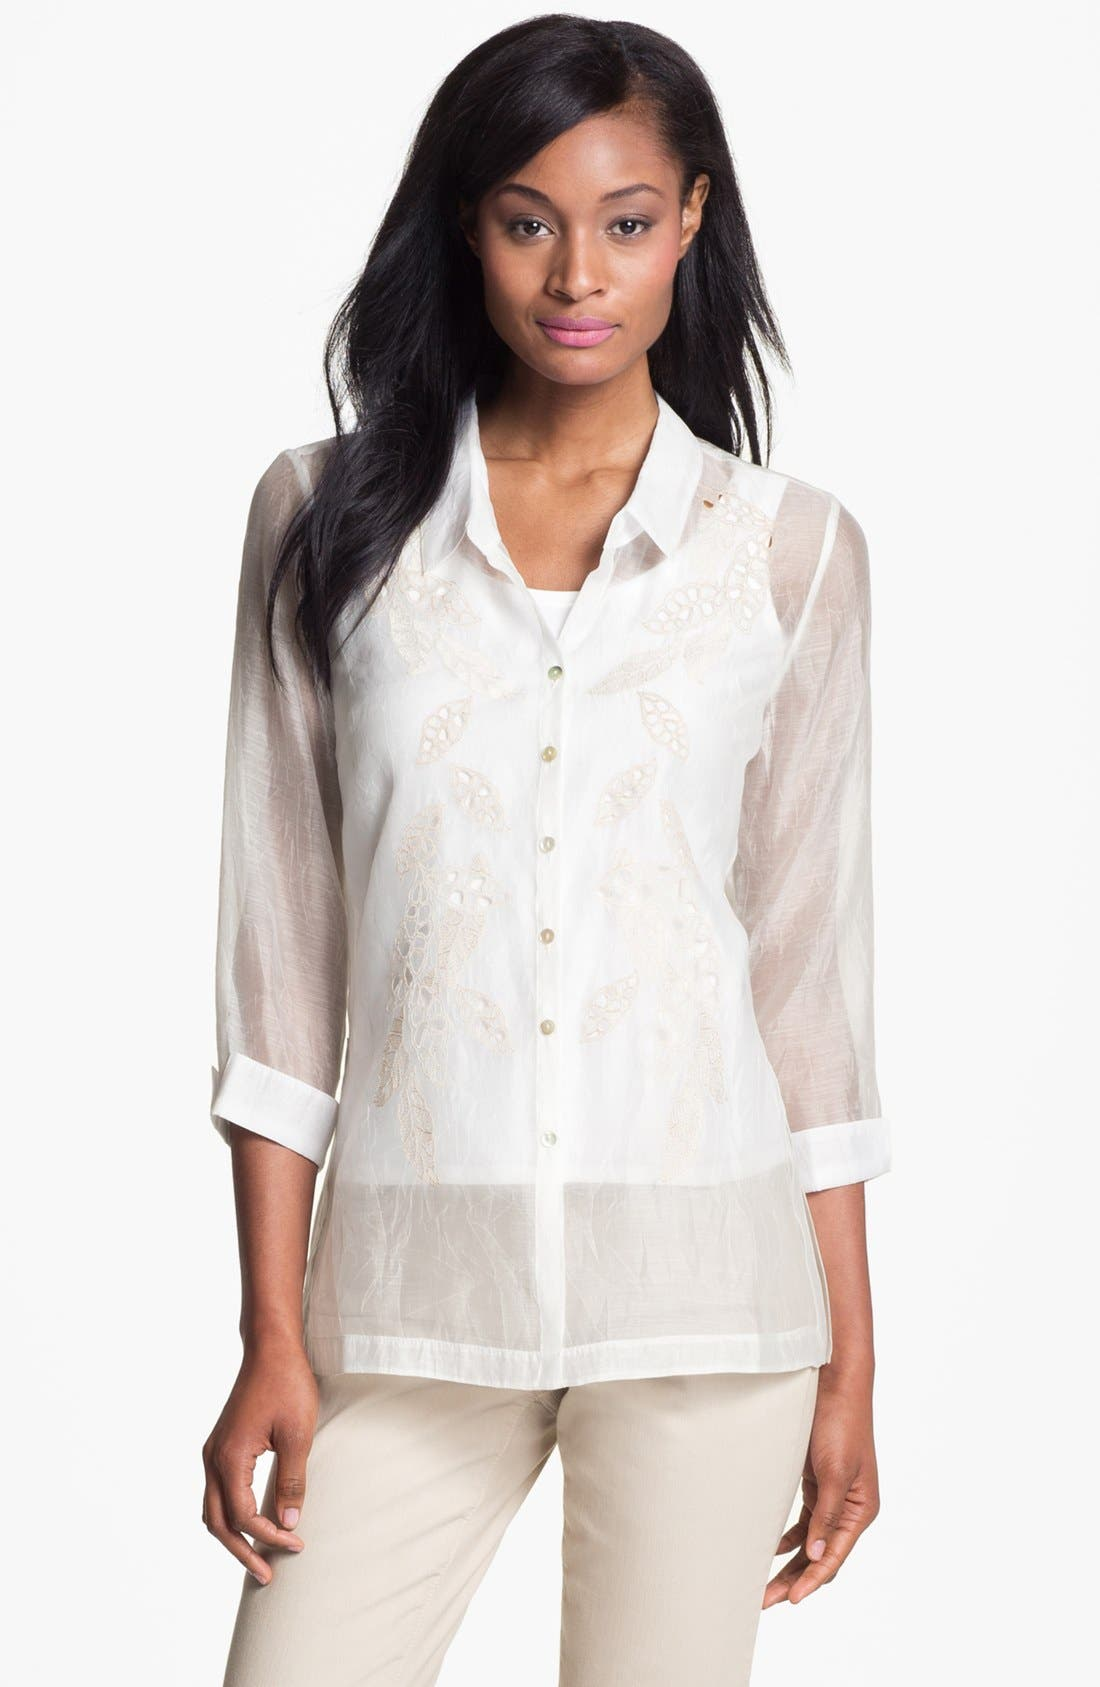 Alternate Image 1 Selected - Nic + Zoe 'Embroidered Shores' Shirt (Petite)